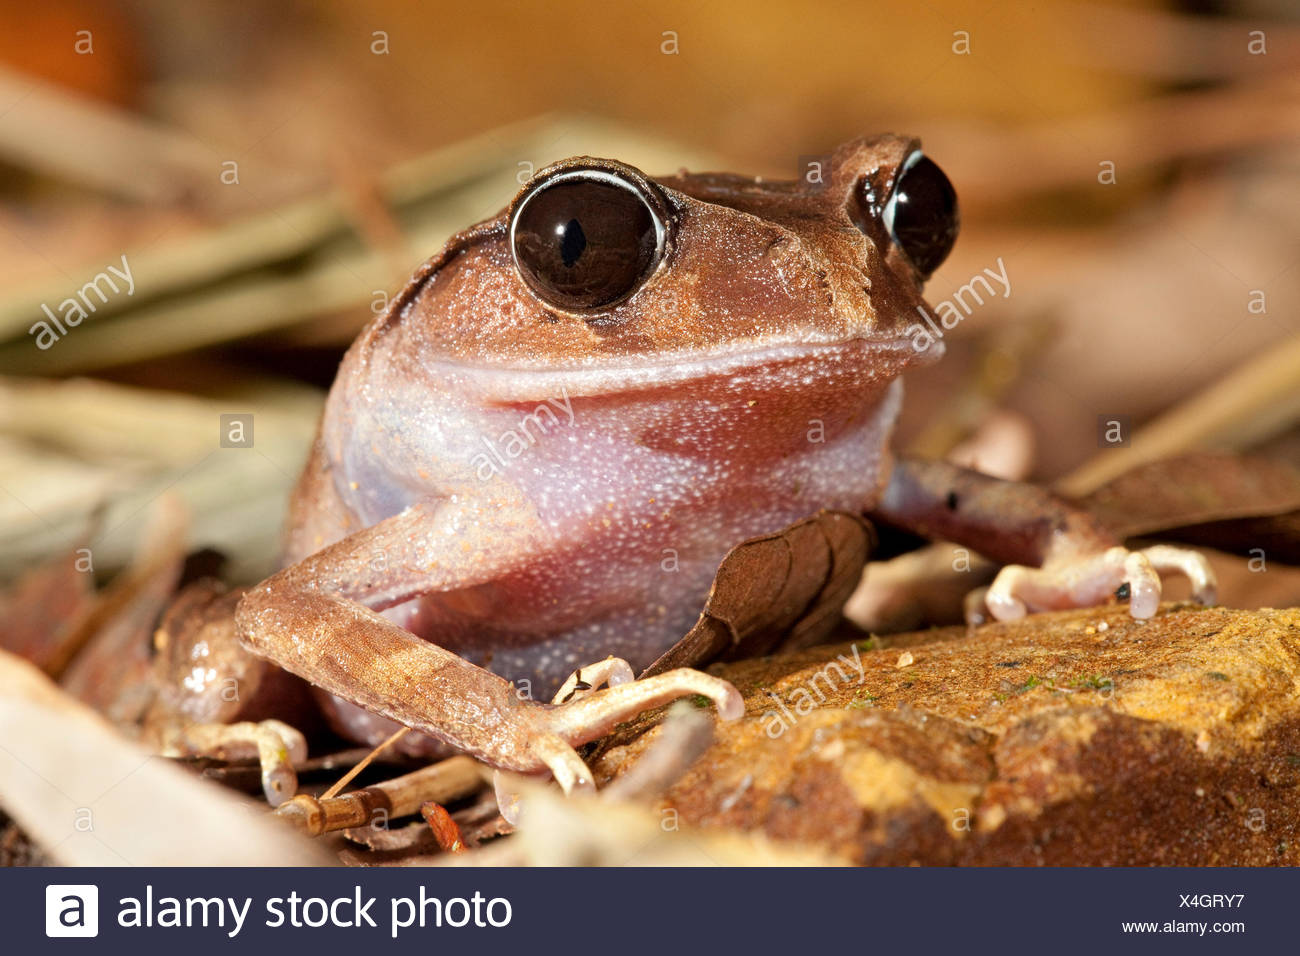 photo of a montane litter frog - Stock Image